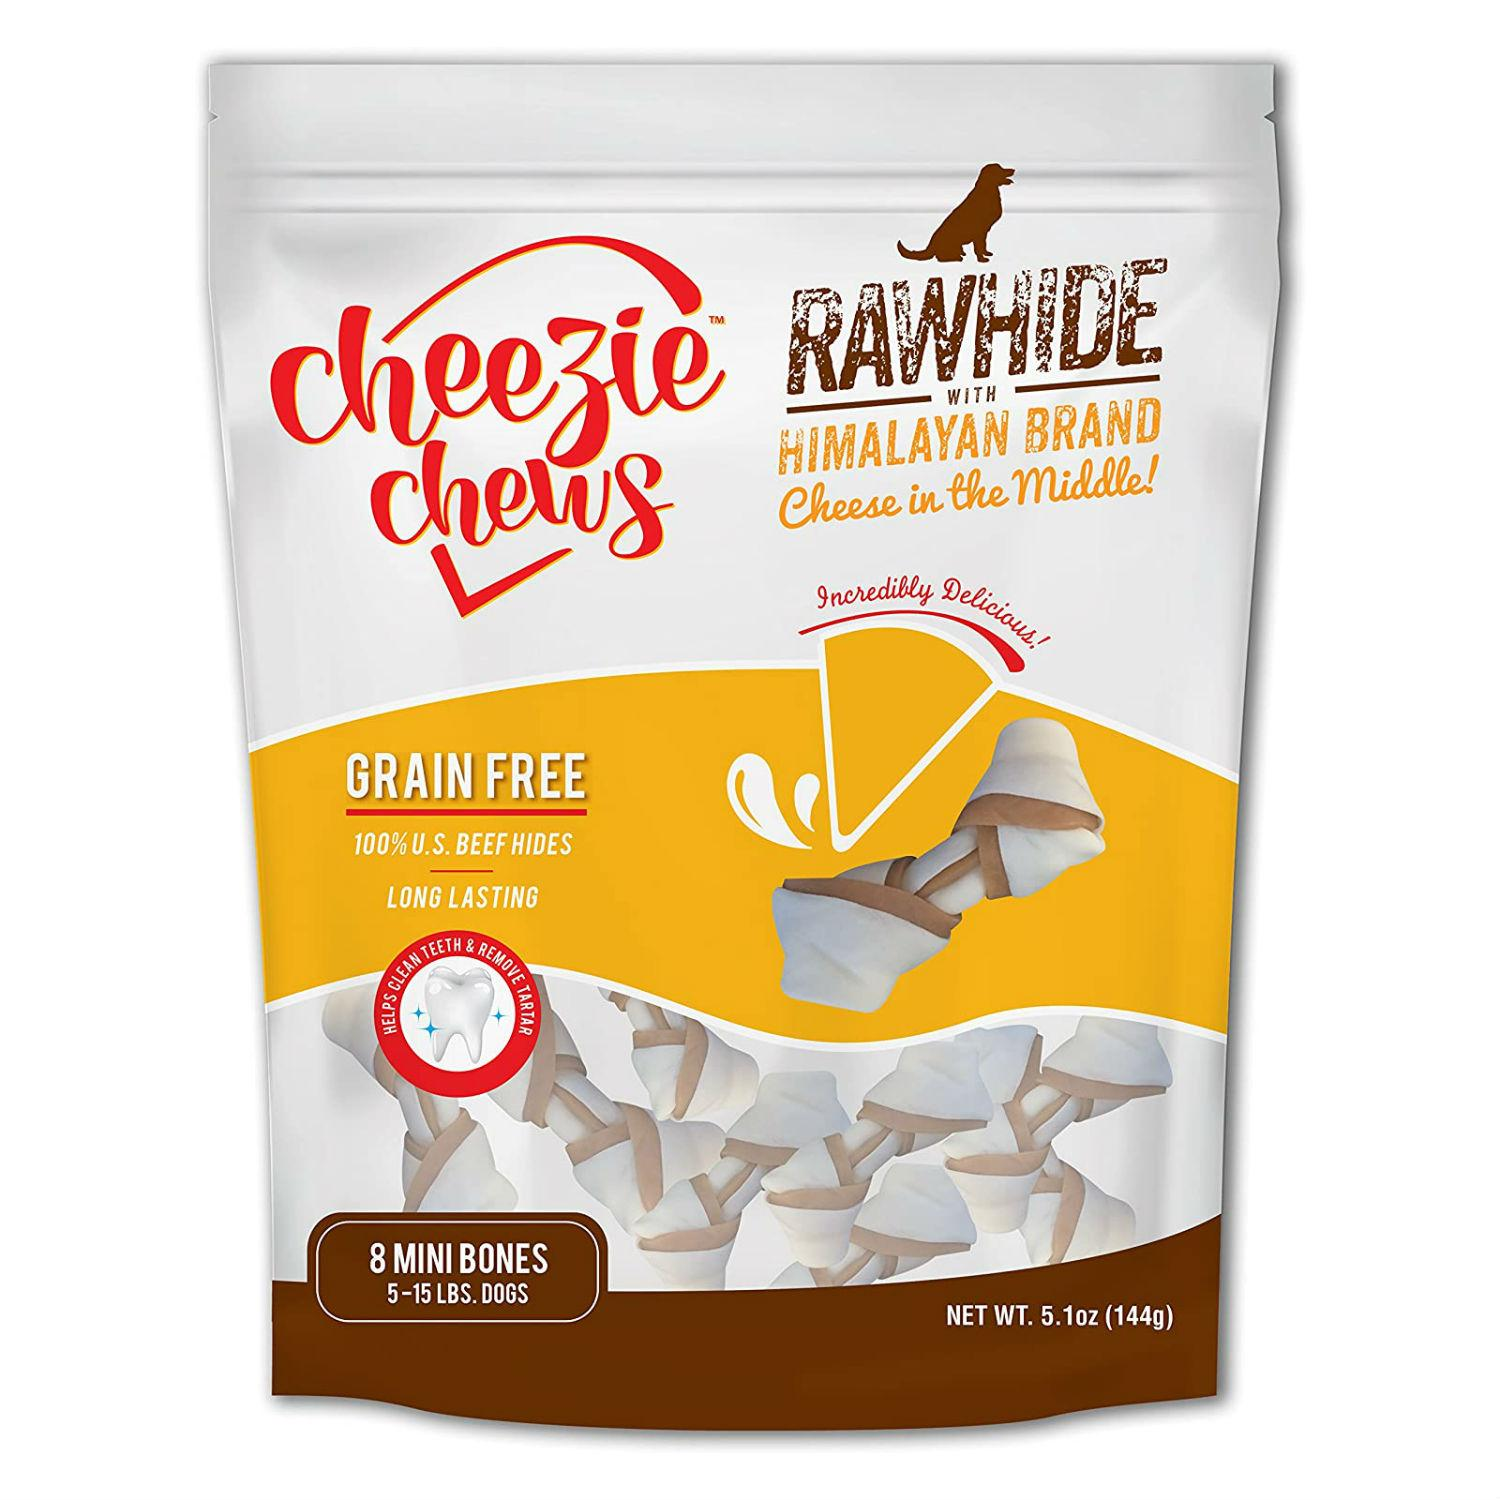 Cheezie Chews Knotted Rawhide with Himalayan Brand Cheese Chews Dog Treat - Mini